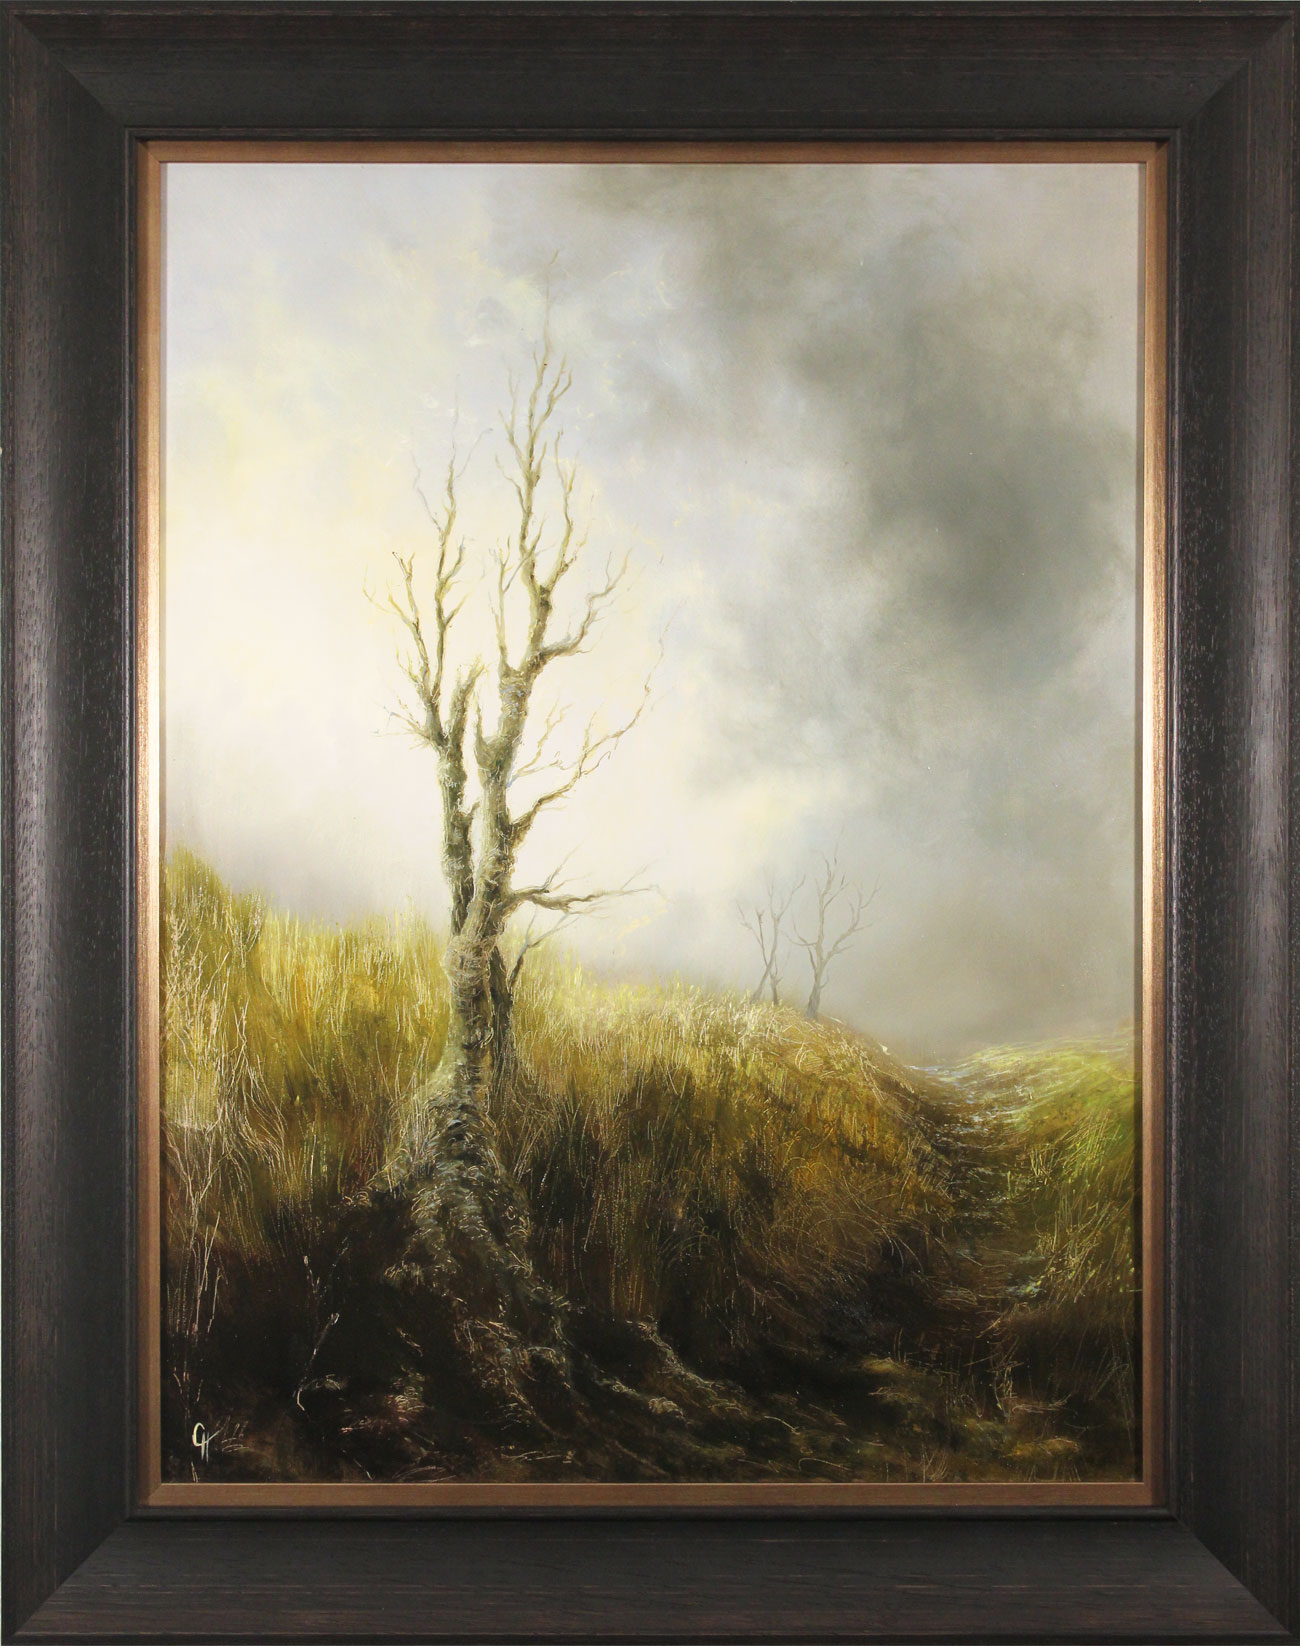 Clare Haley, Original oil painting on panel, The Last Season Click to enlarge